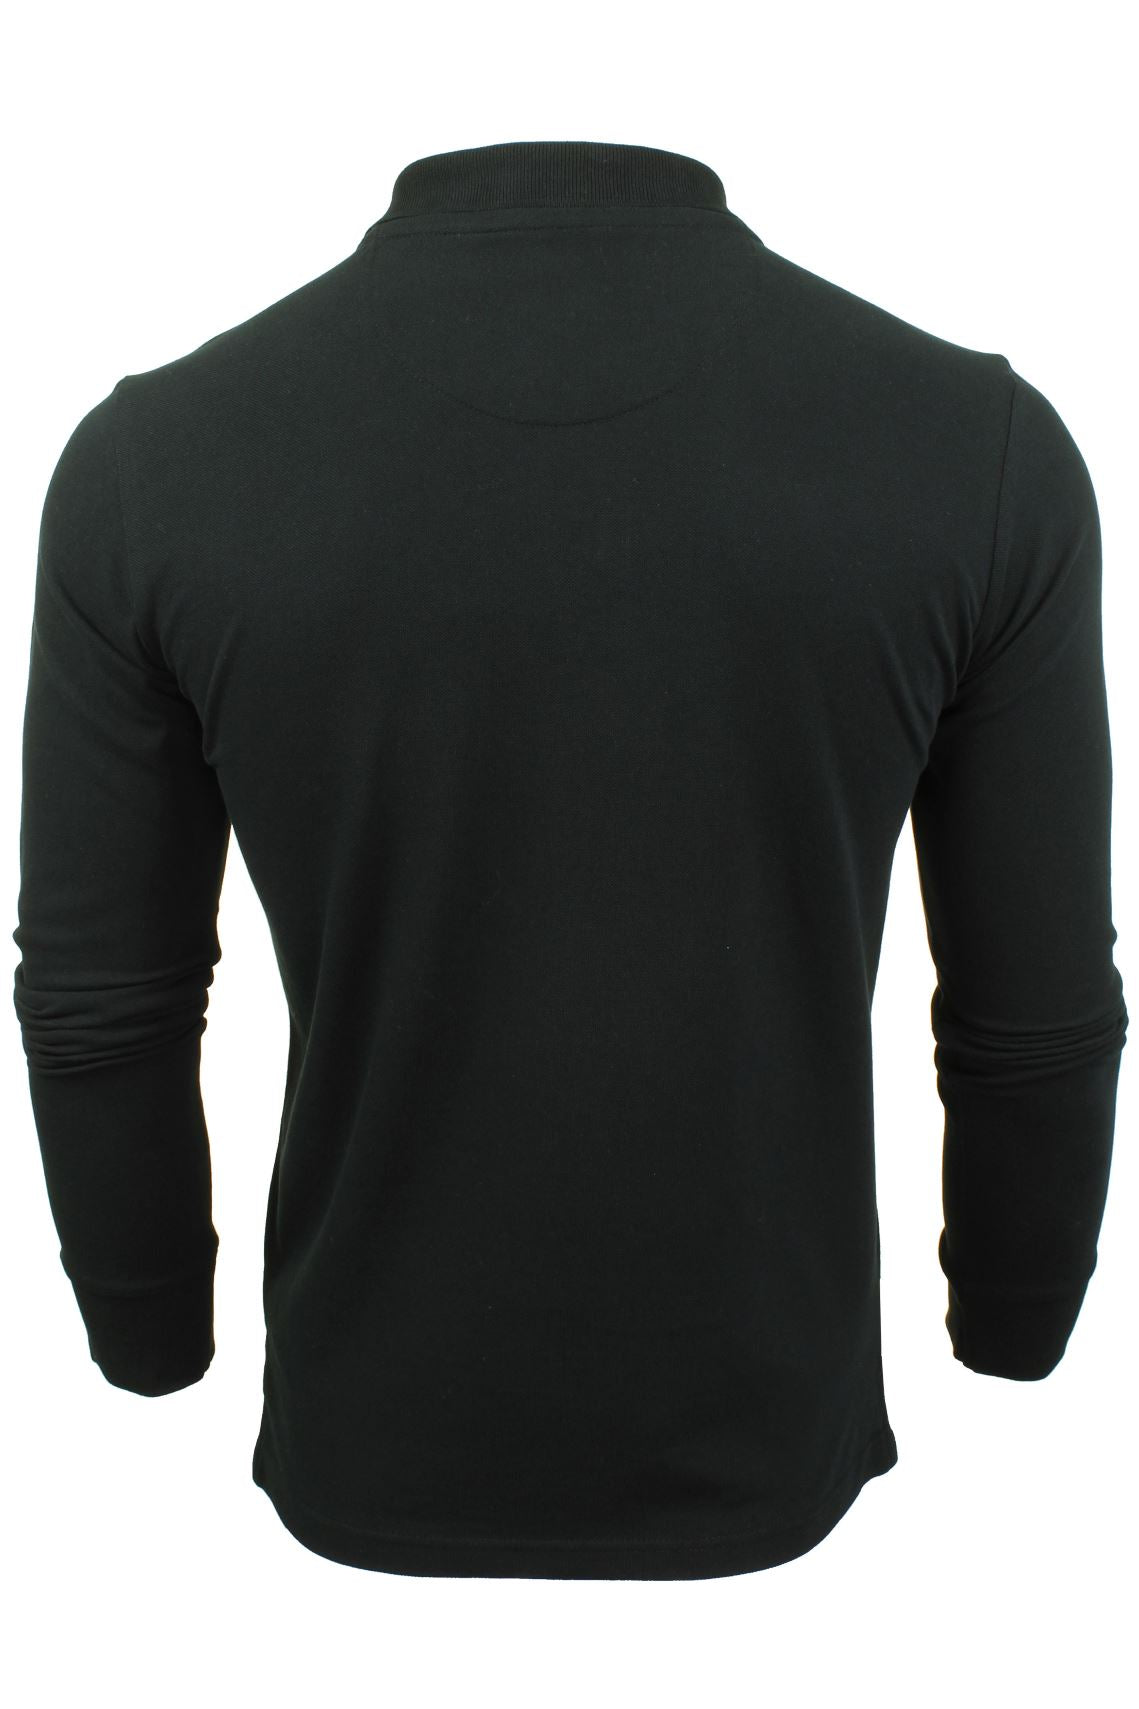 Mens Polo T-Shirt by Xact Pique Long Sleeved_03_XP1003_Black